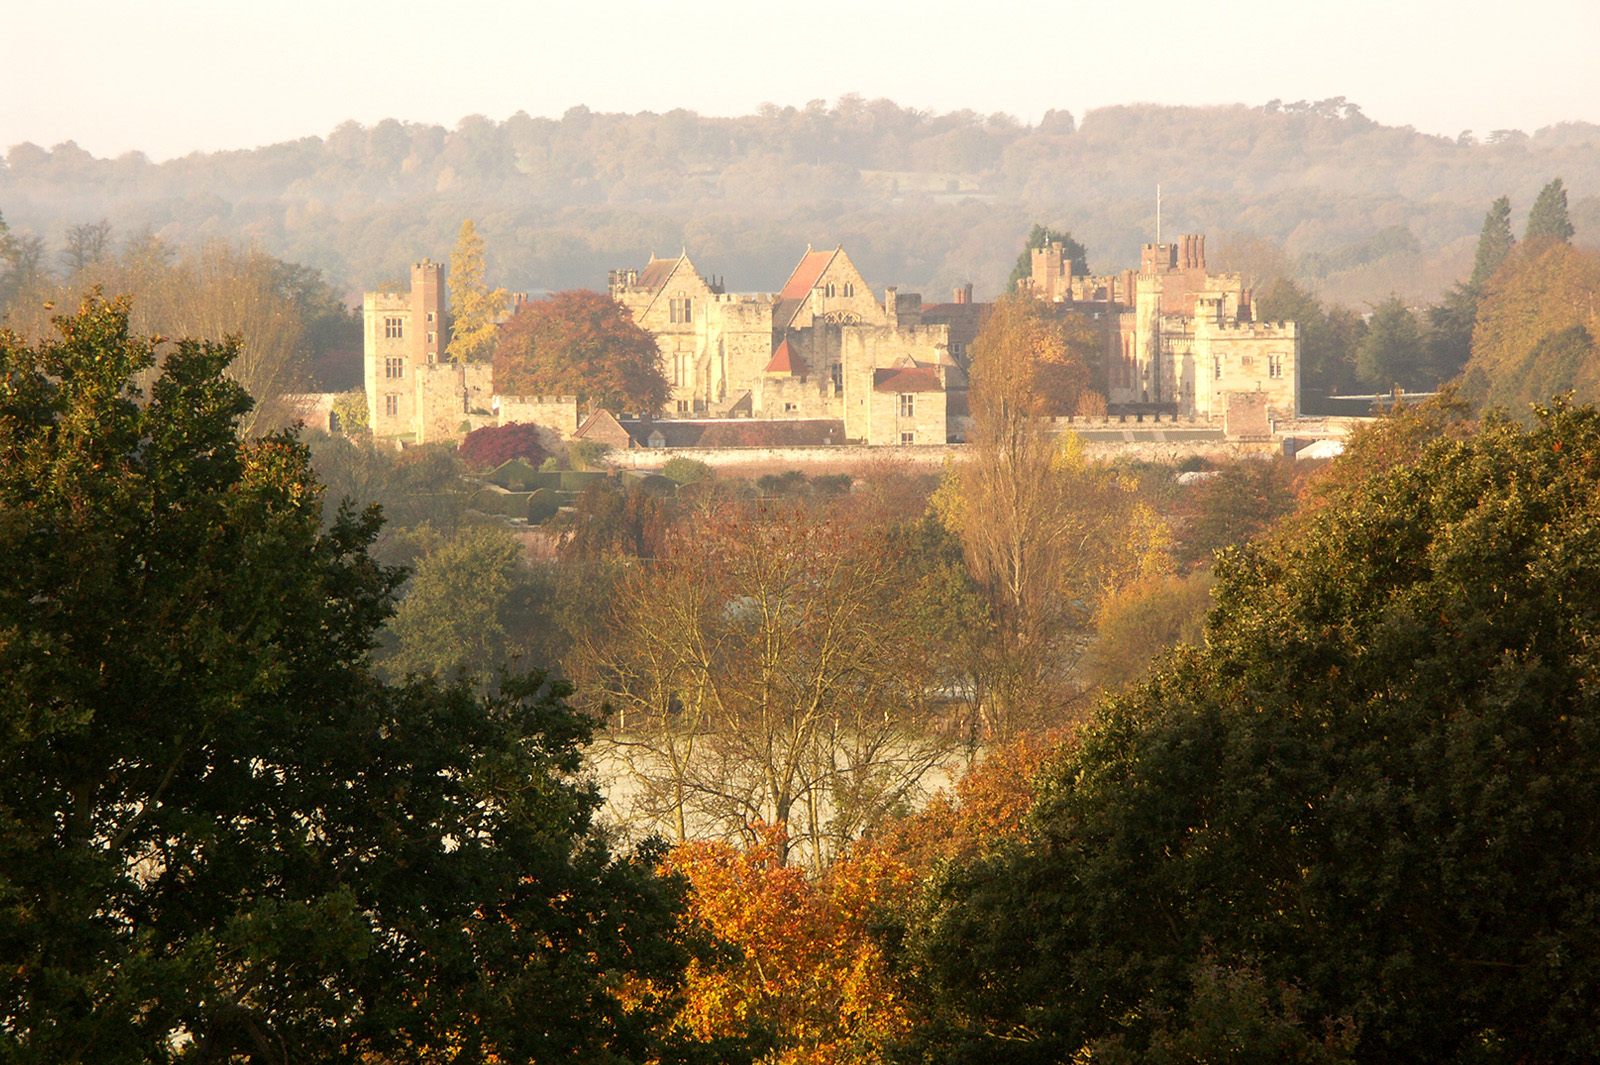 Penshurst Place in autumnal mist - courtesy of Penshurst Place